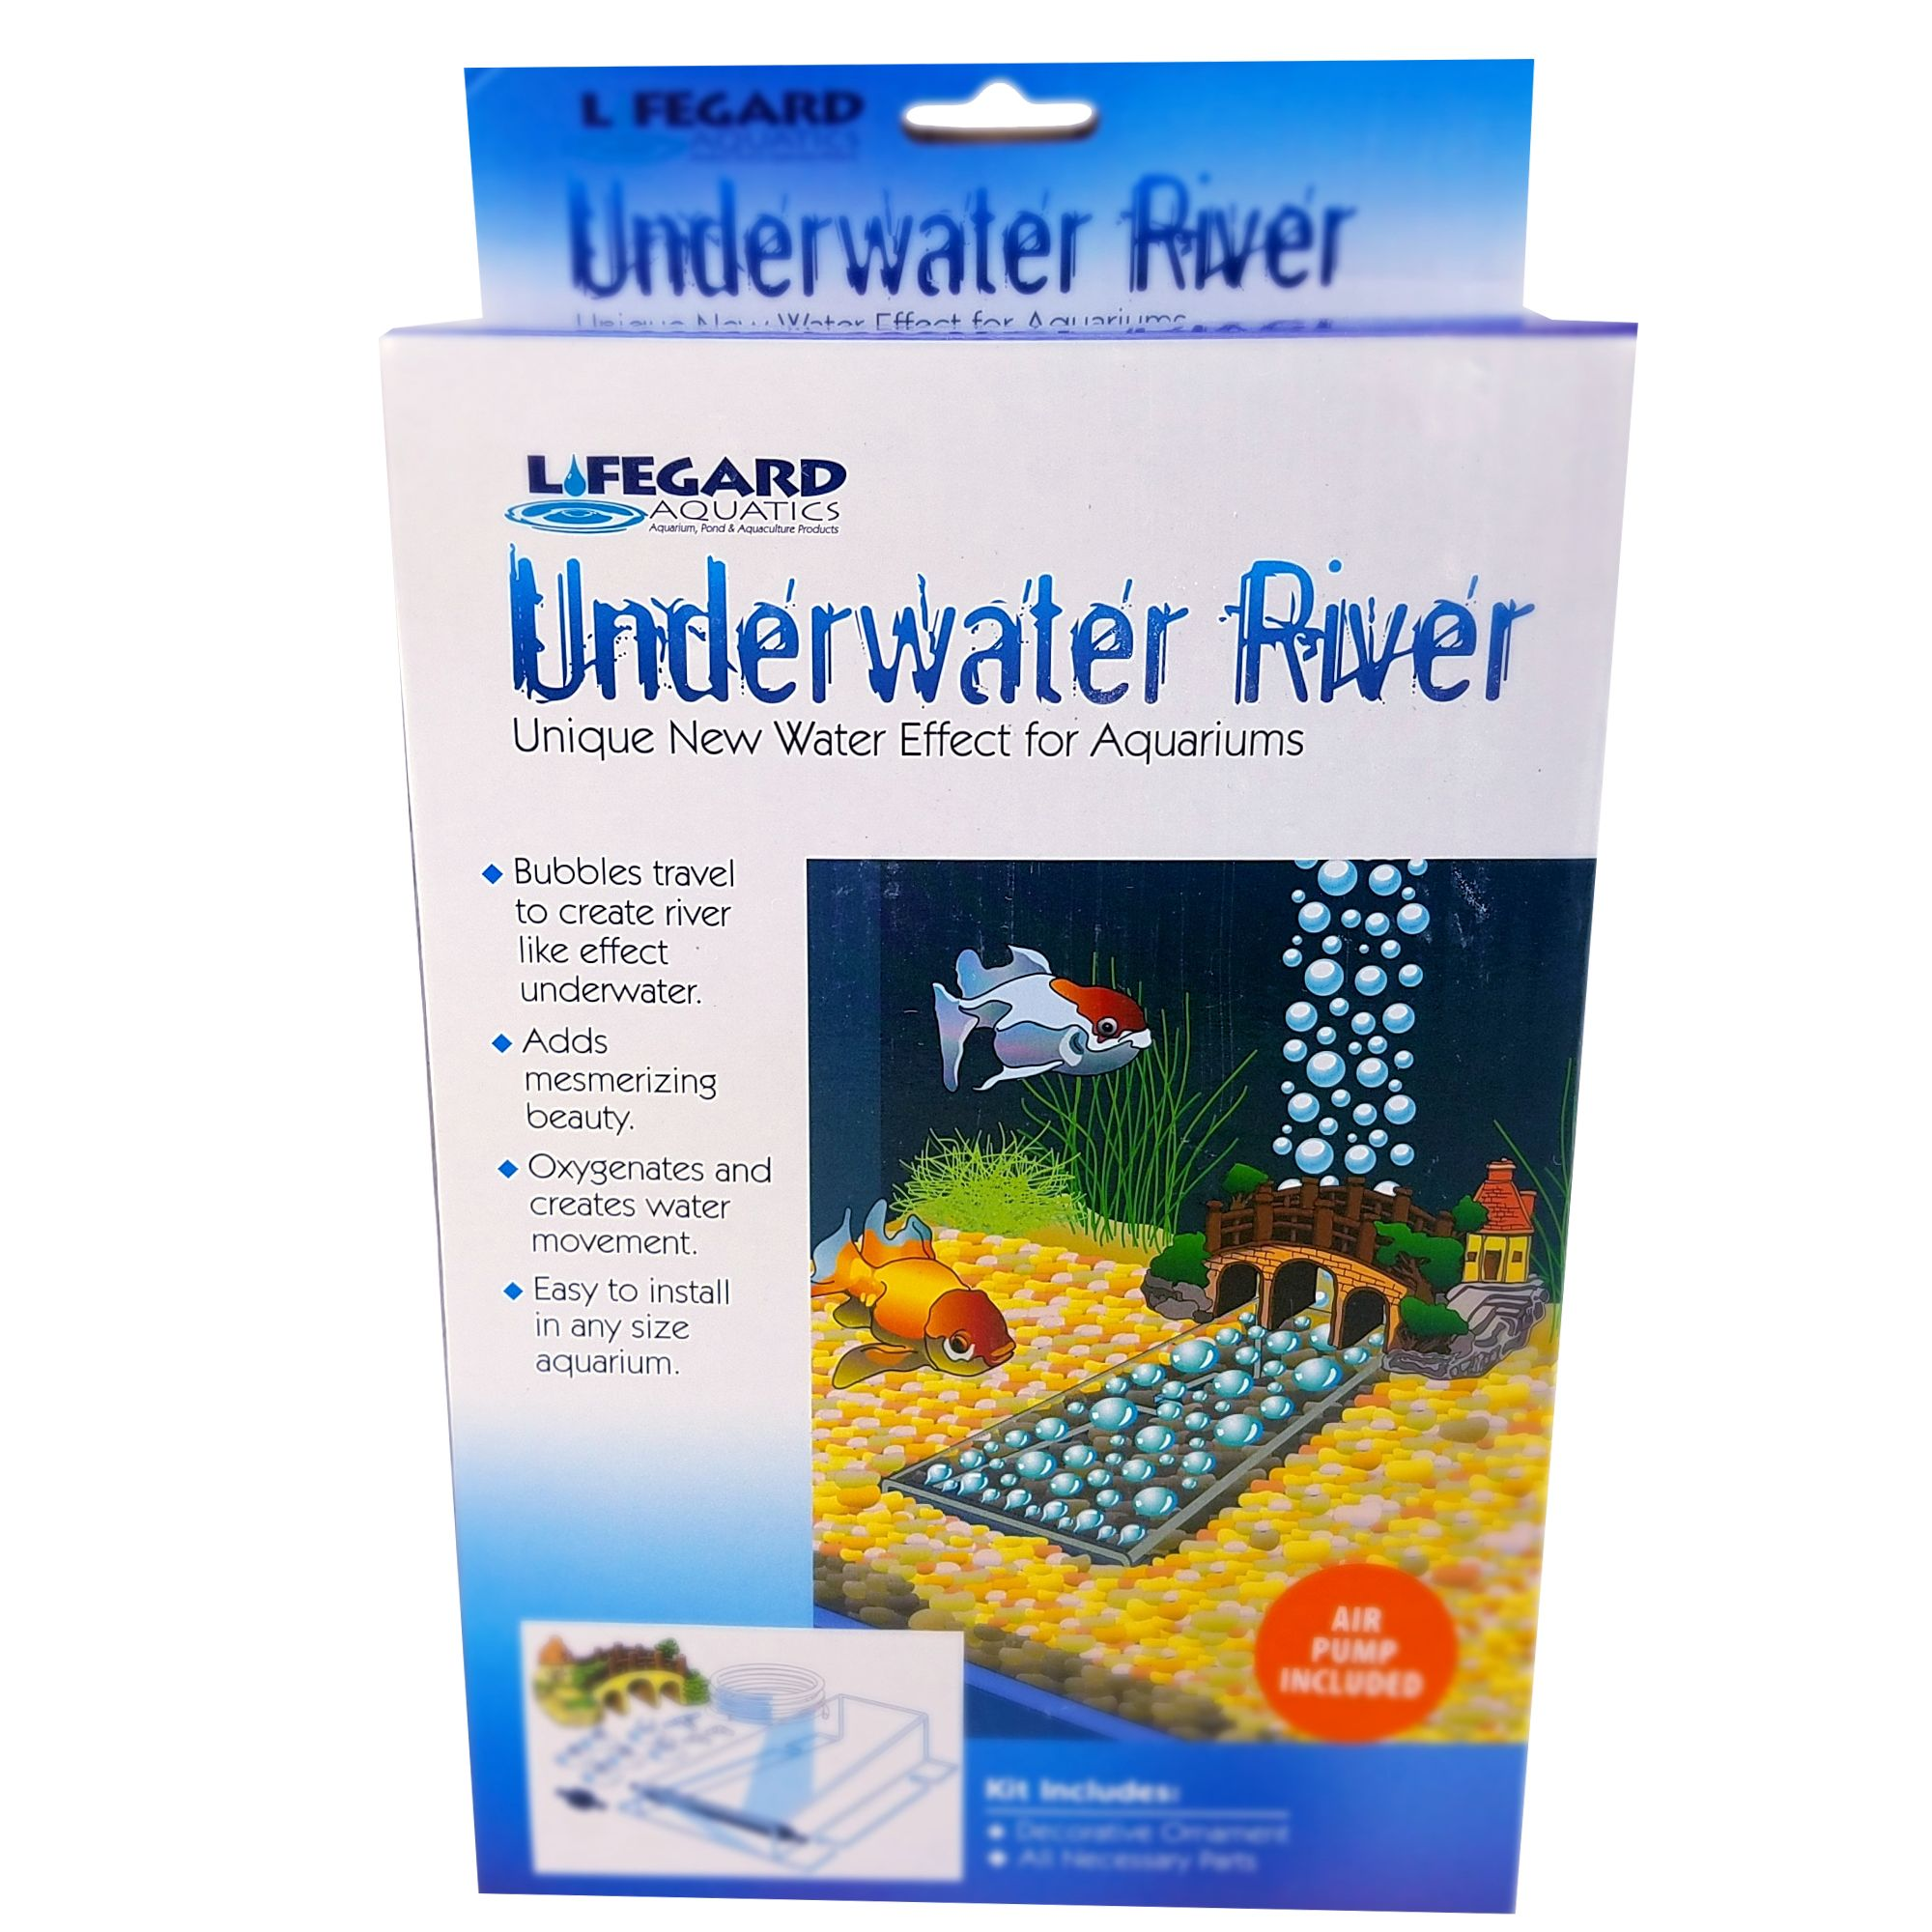 Lifegard Aquatics Underwater River Aquarium Ornament size: Medium